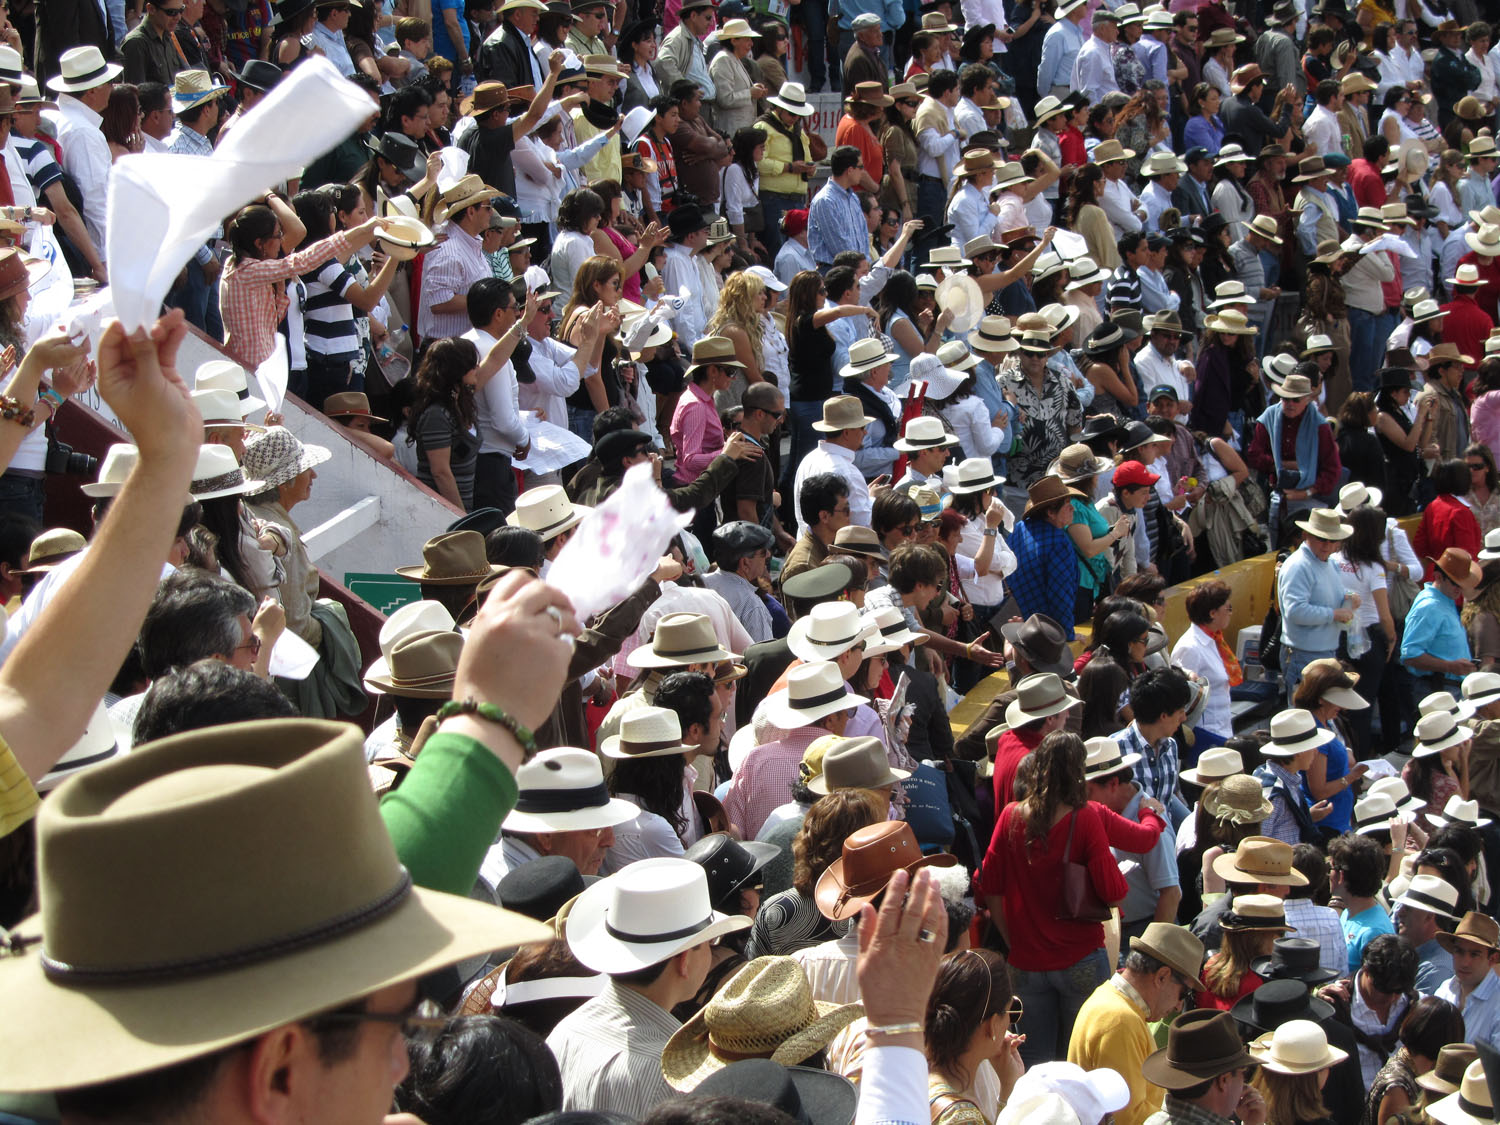 Ecuador-Quito-Bullfight-Crowd-Cheering